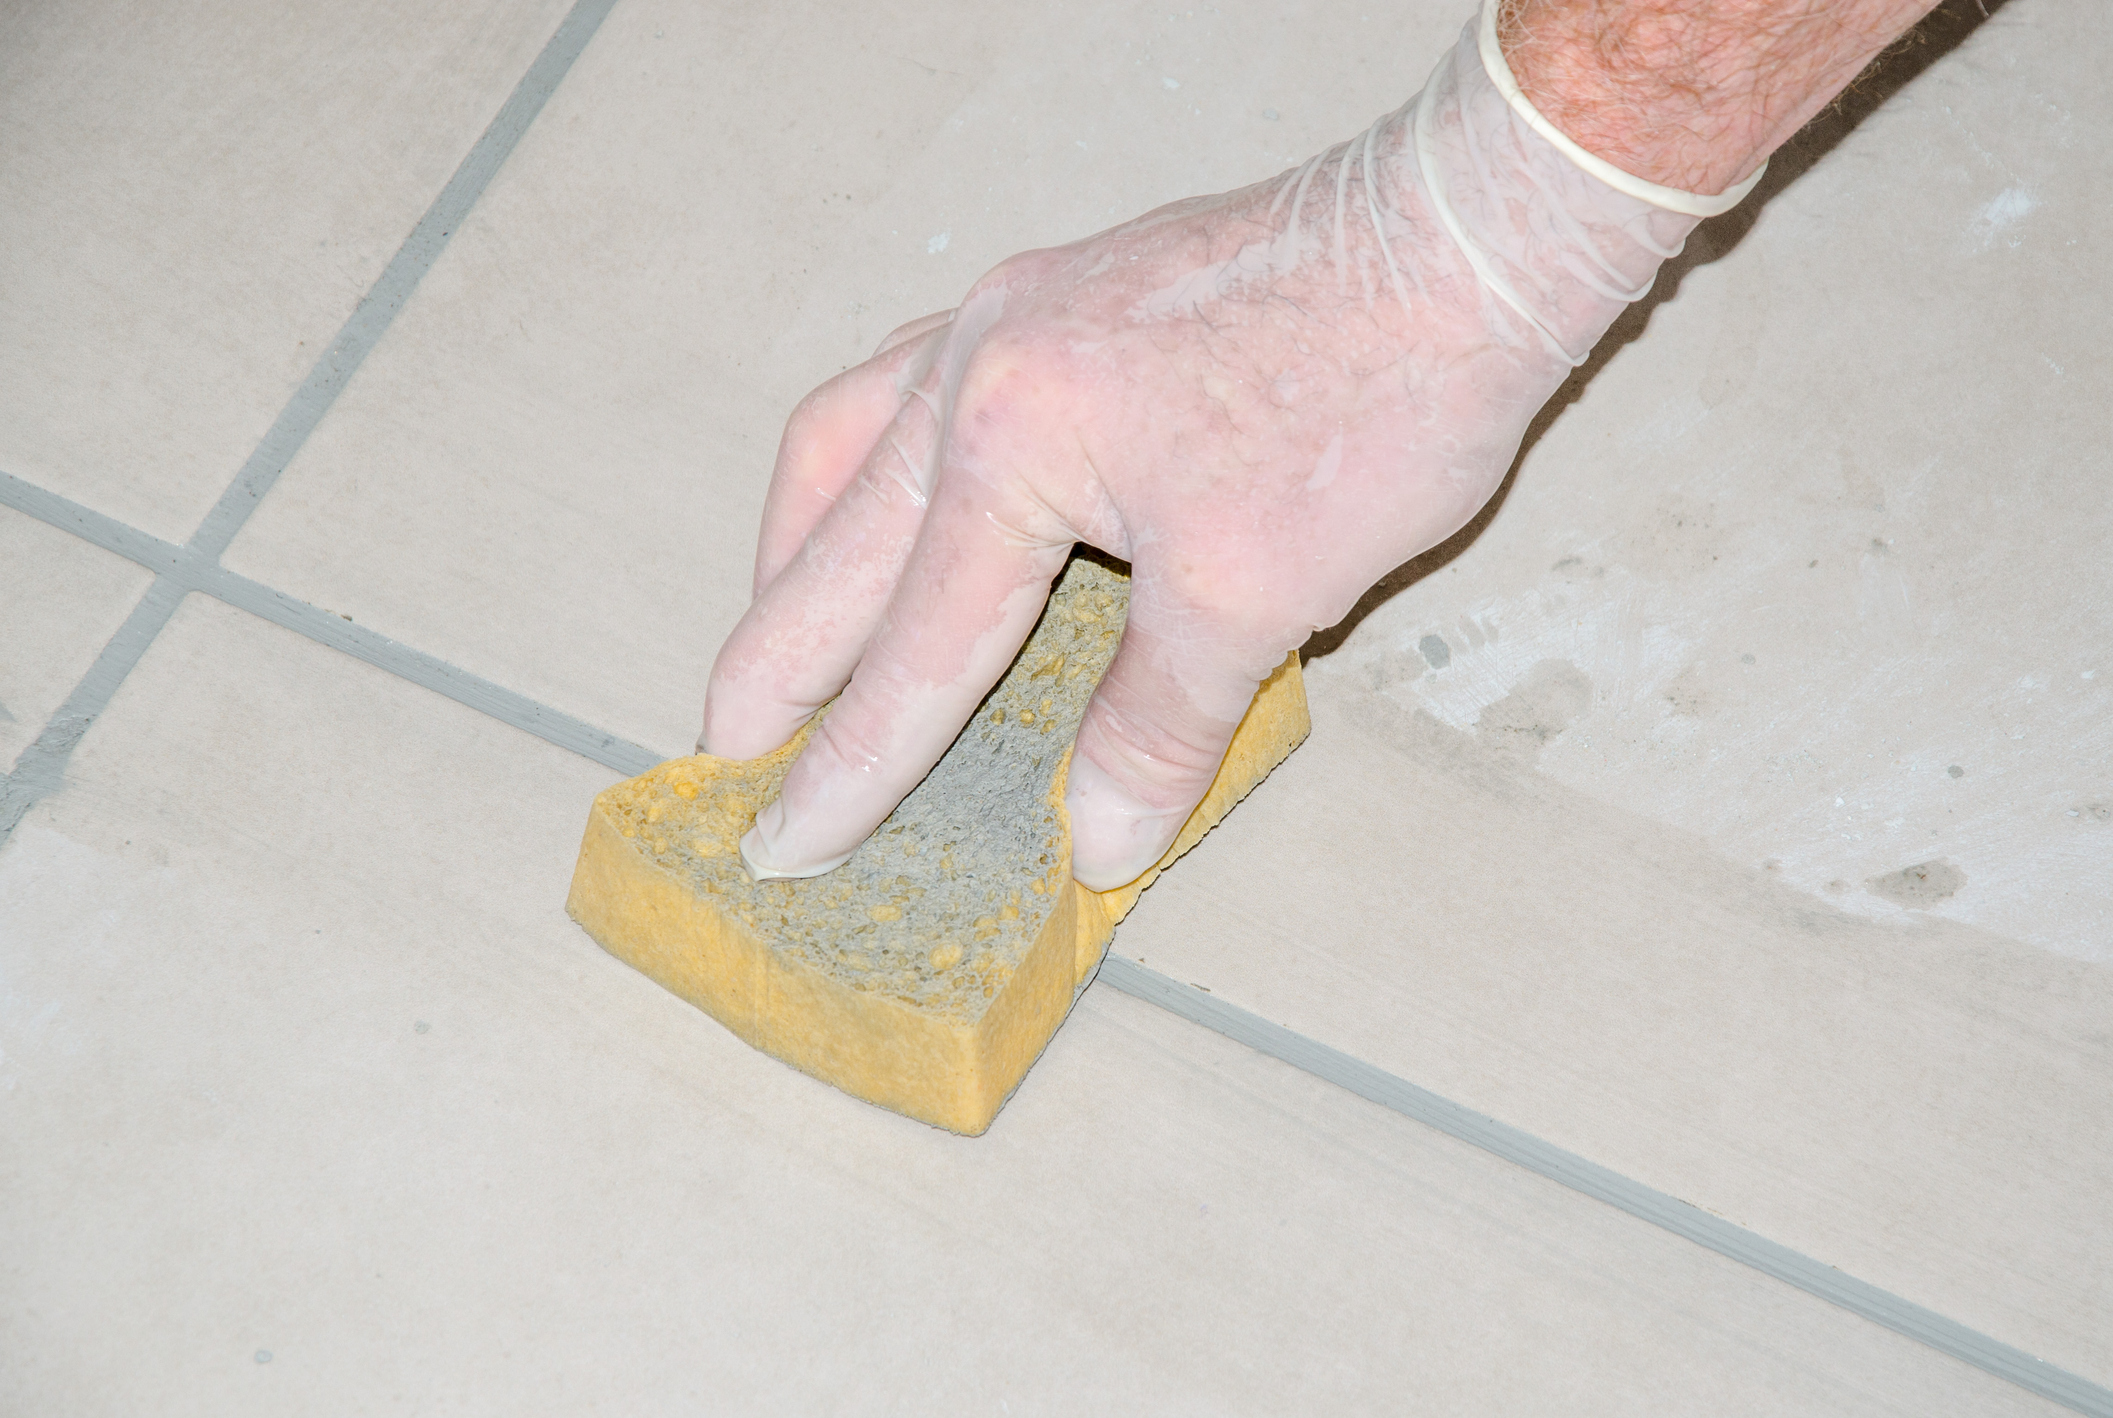 Tiler smoothing tile joints with a sponge